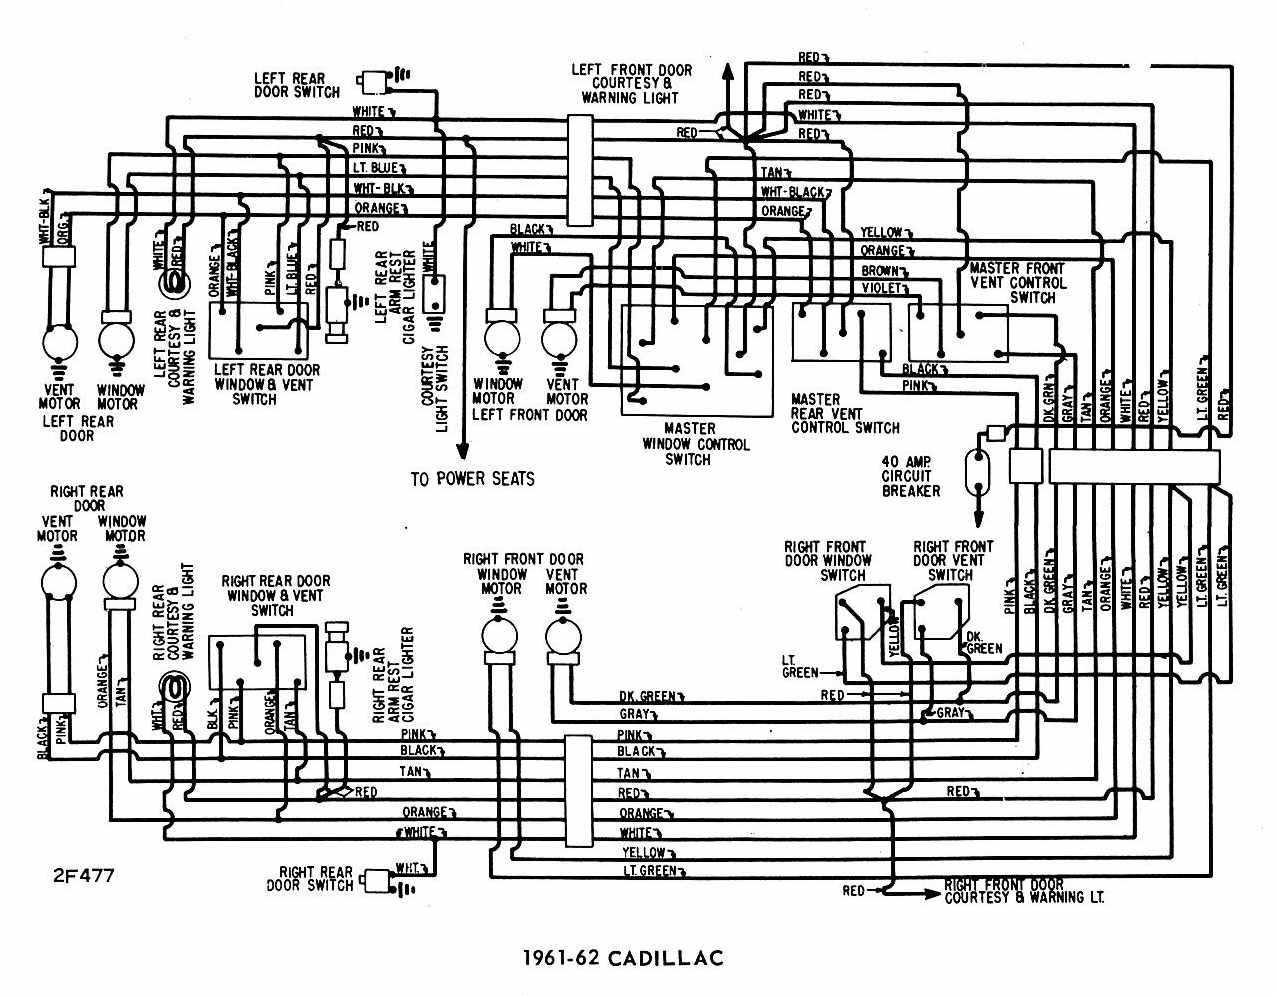 2008 Buick Enclave Stereo Wiring Diagram Will Be A 2011 2005 Cadillac Sts Data Diagrams Chevorlet Traverse Chevy Malibu Alt